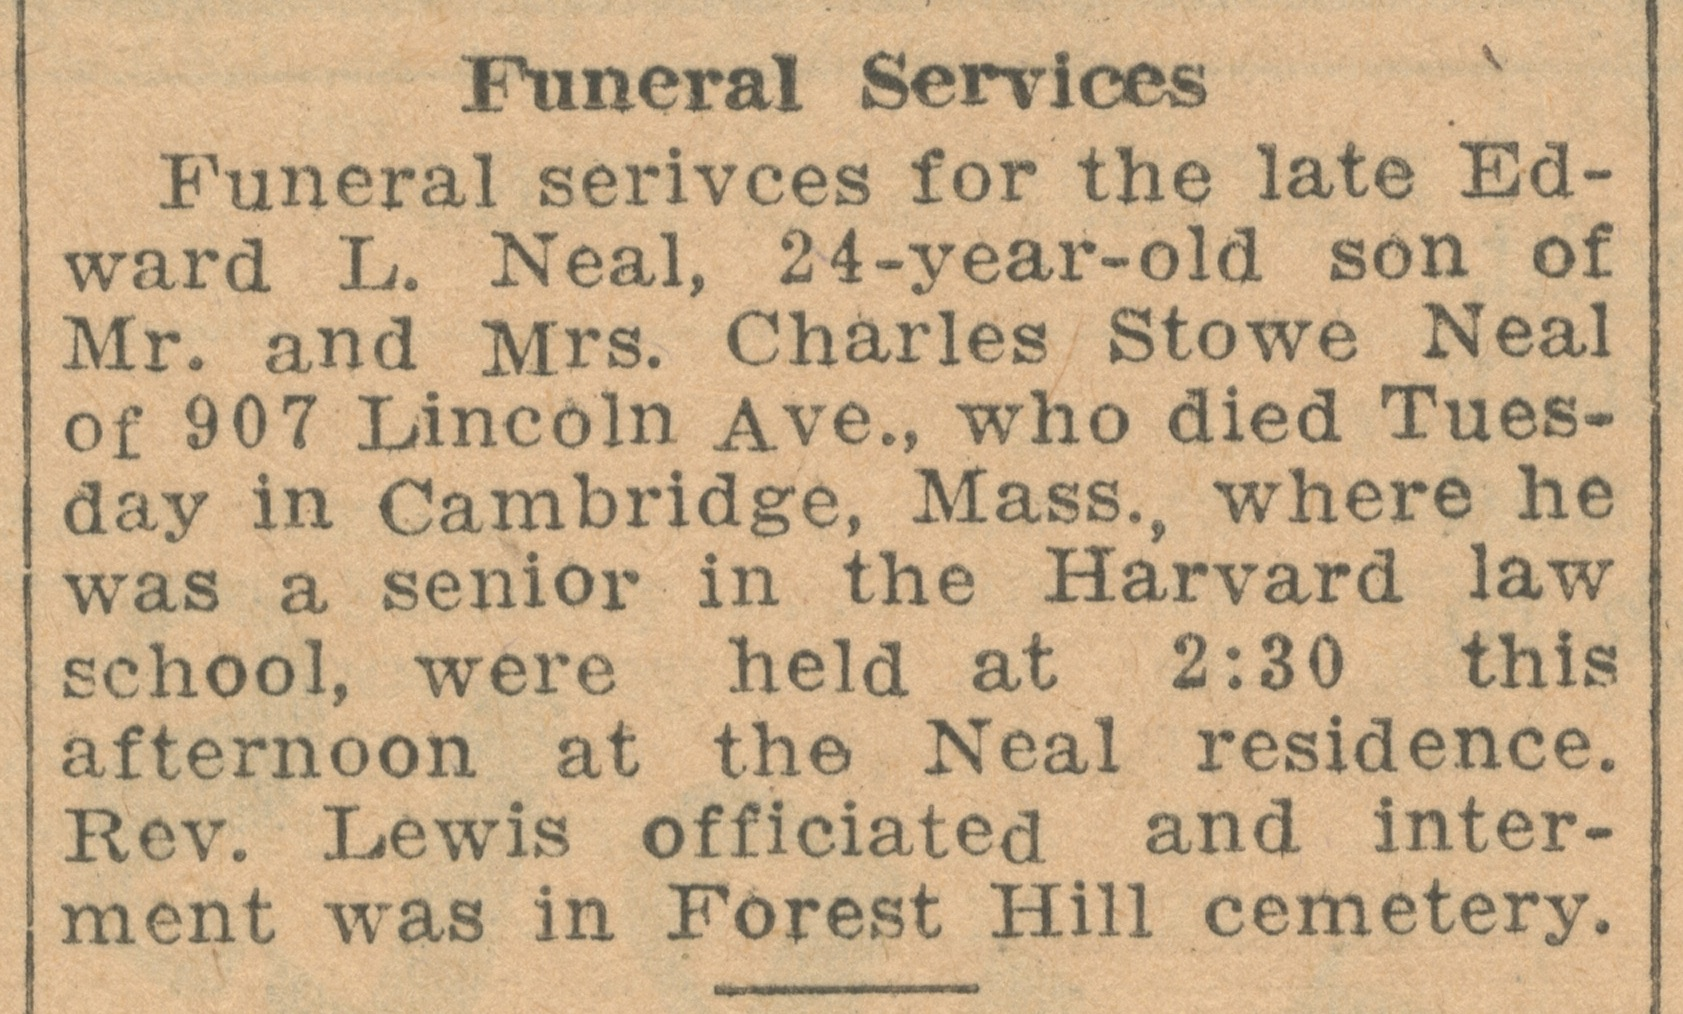 Funeral Services image